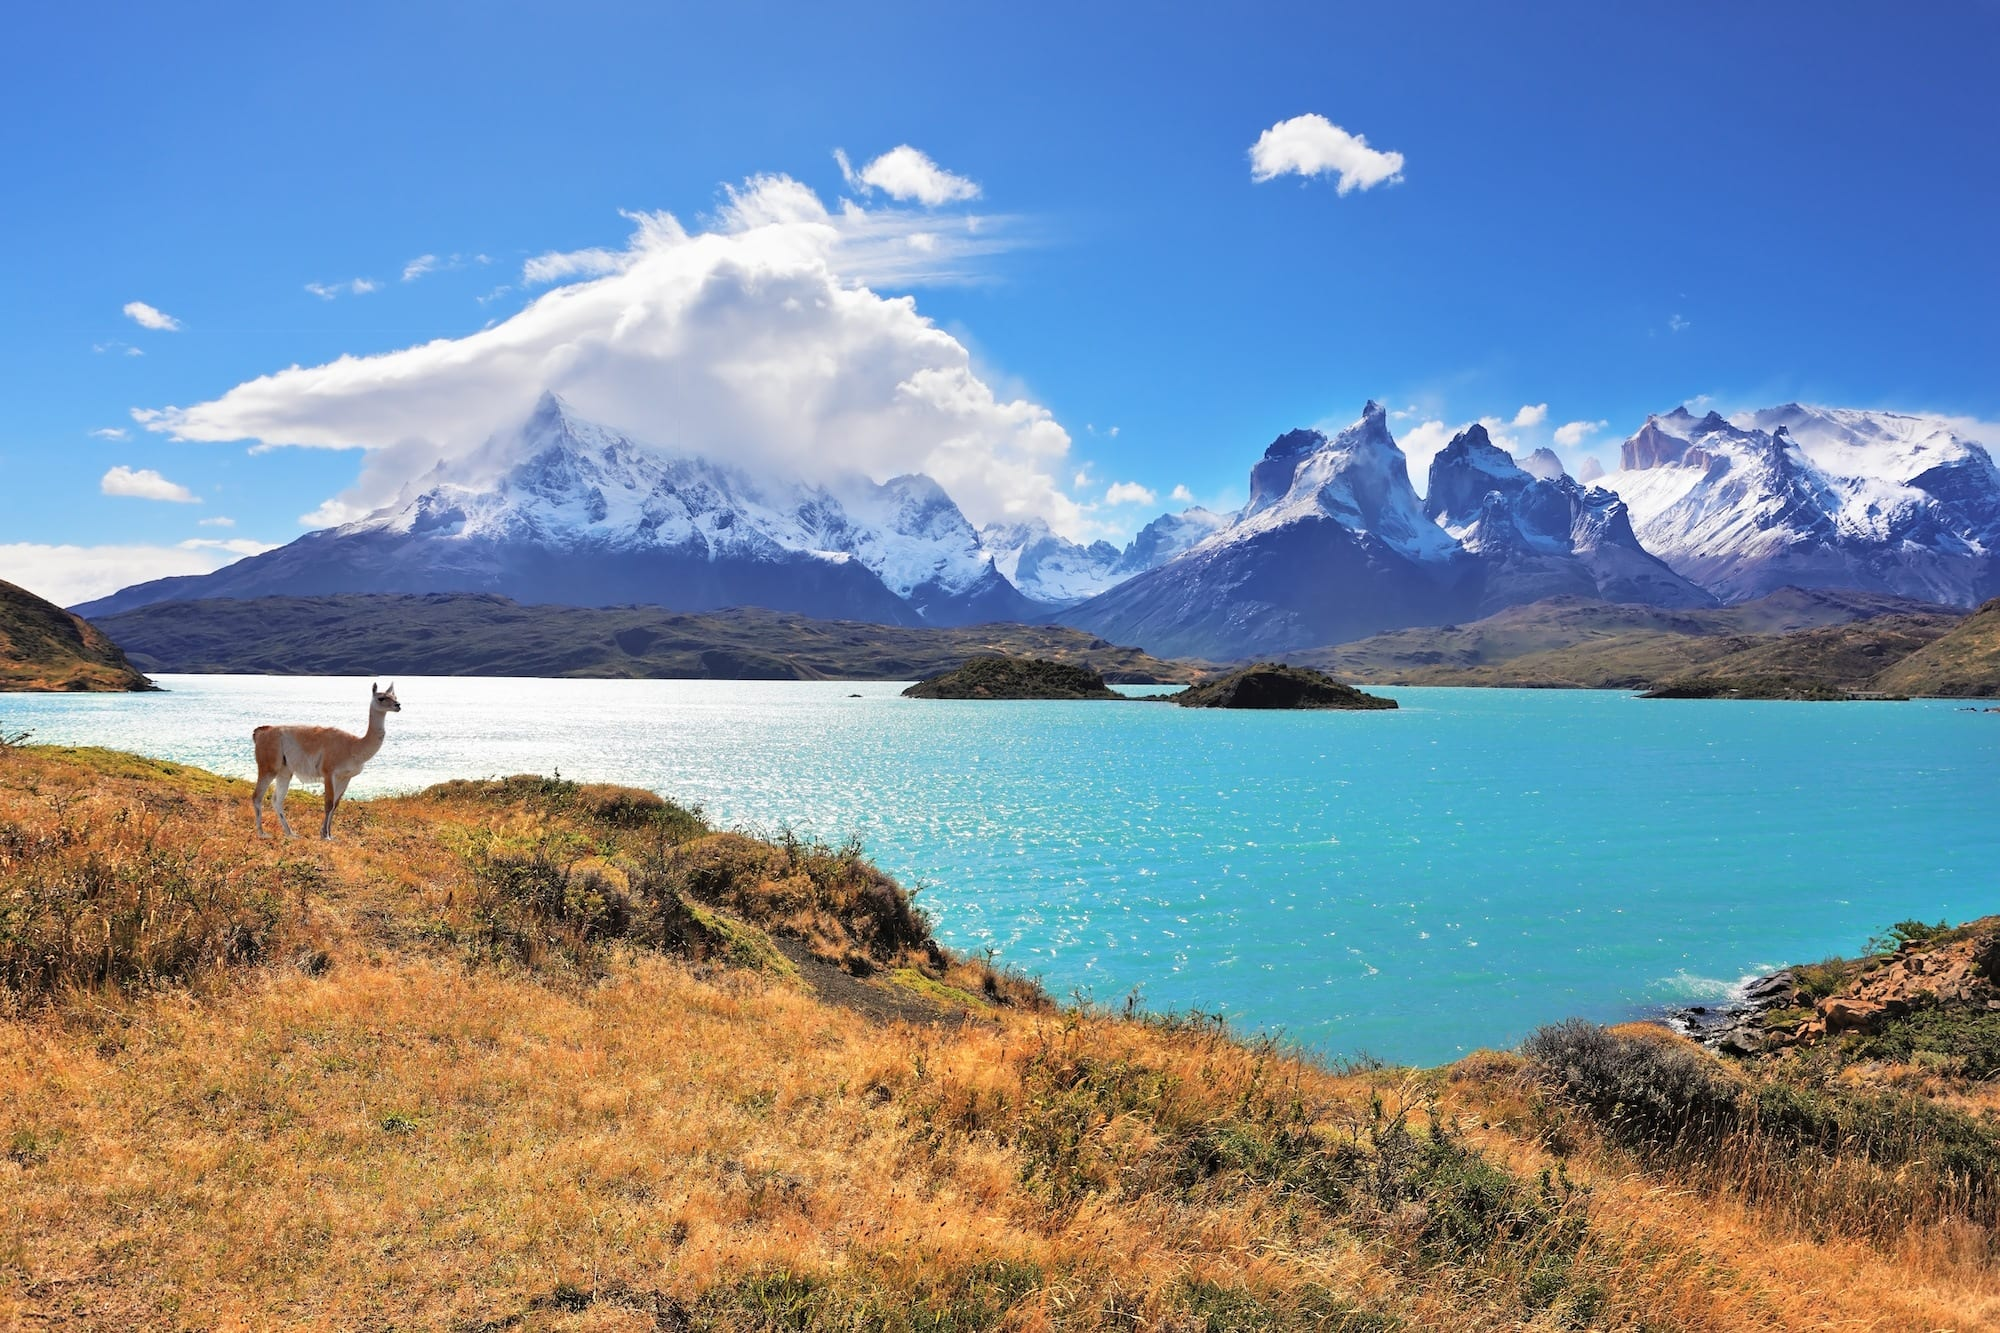 Patagonia Regions Guide: Where Should You Go?